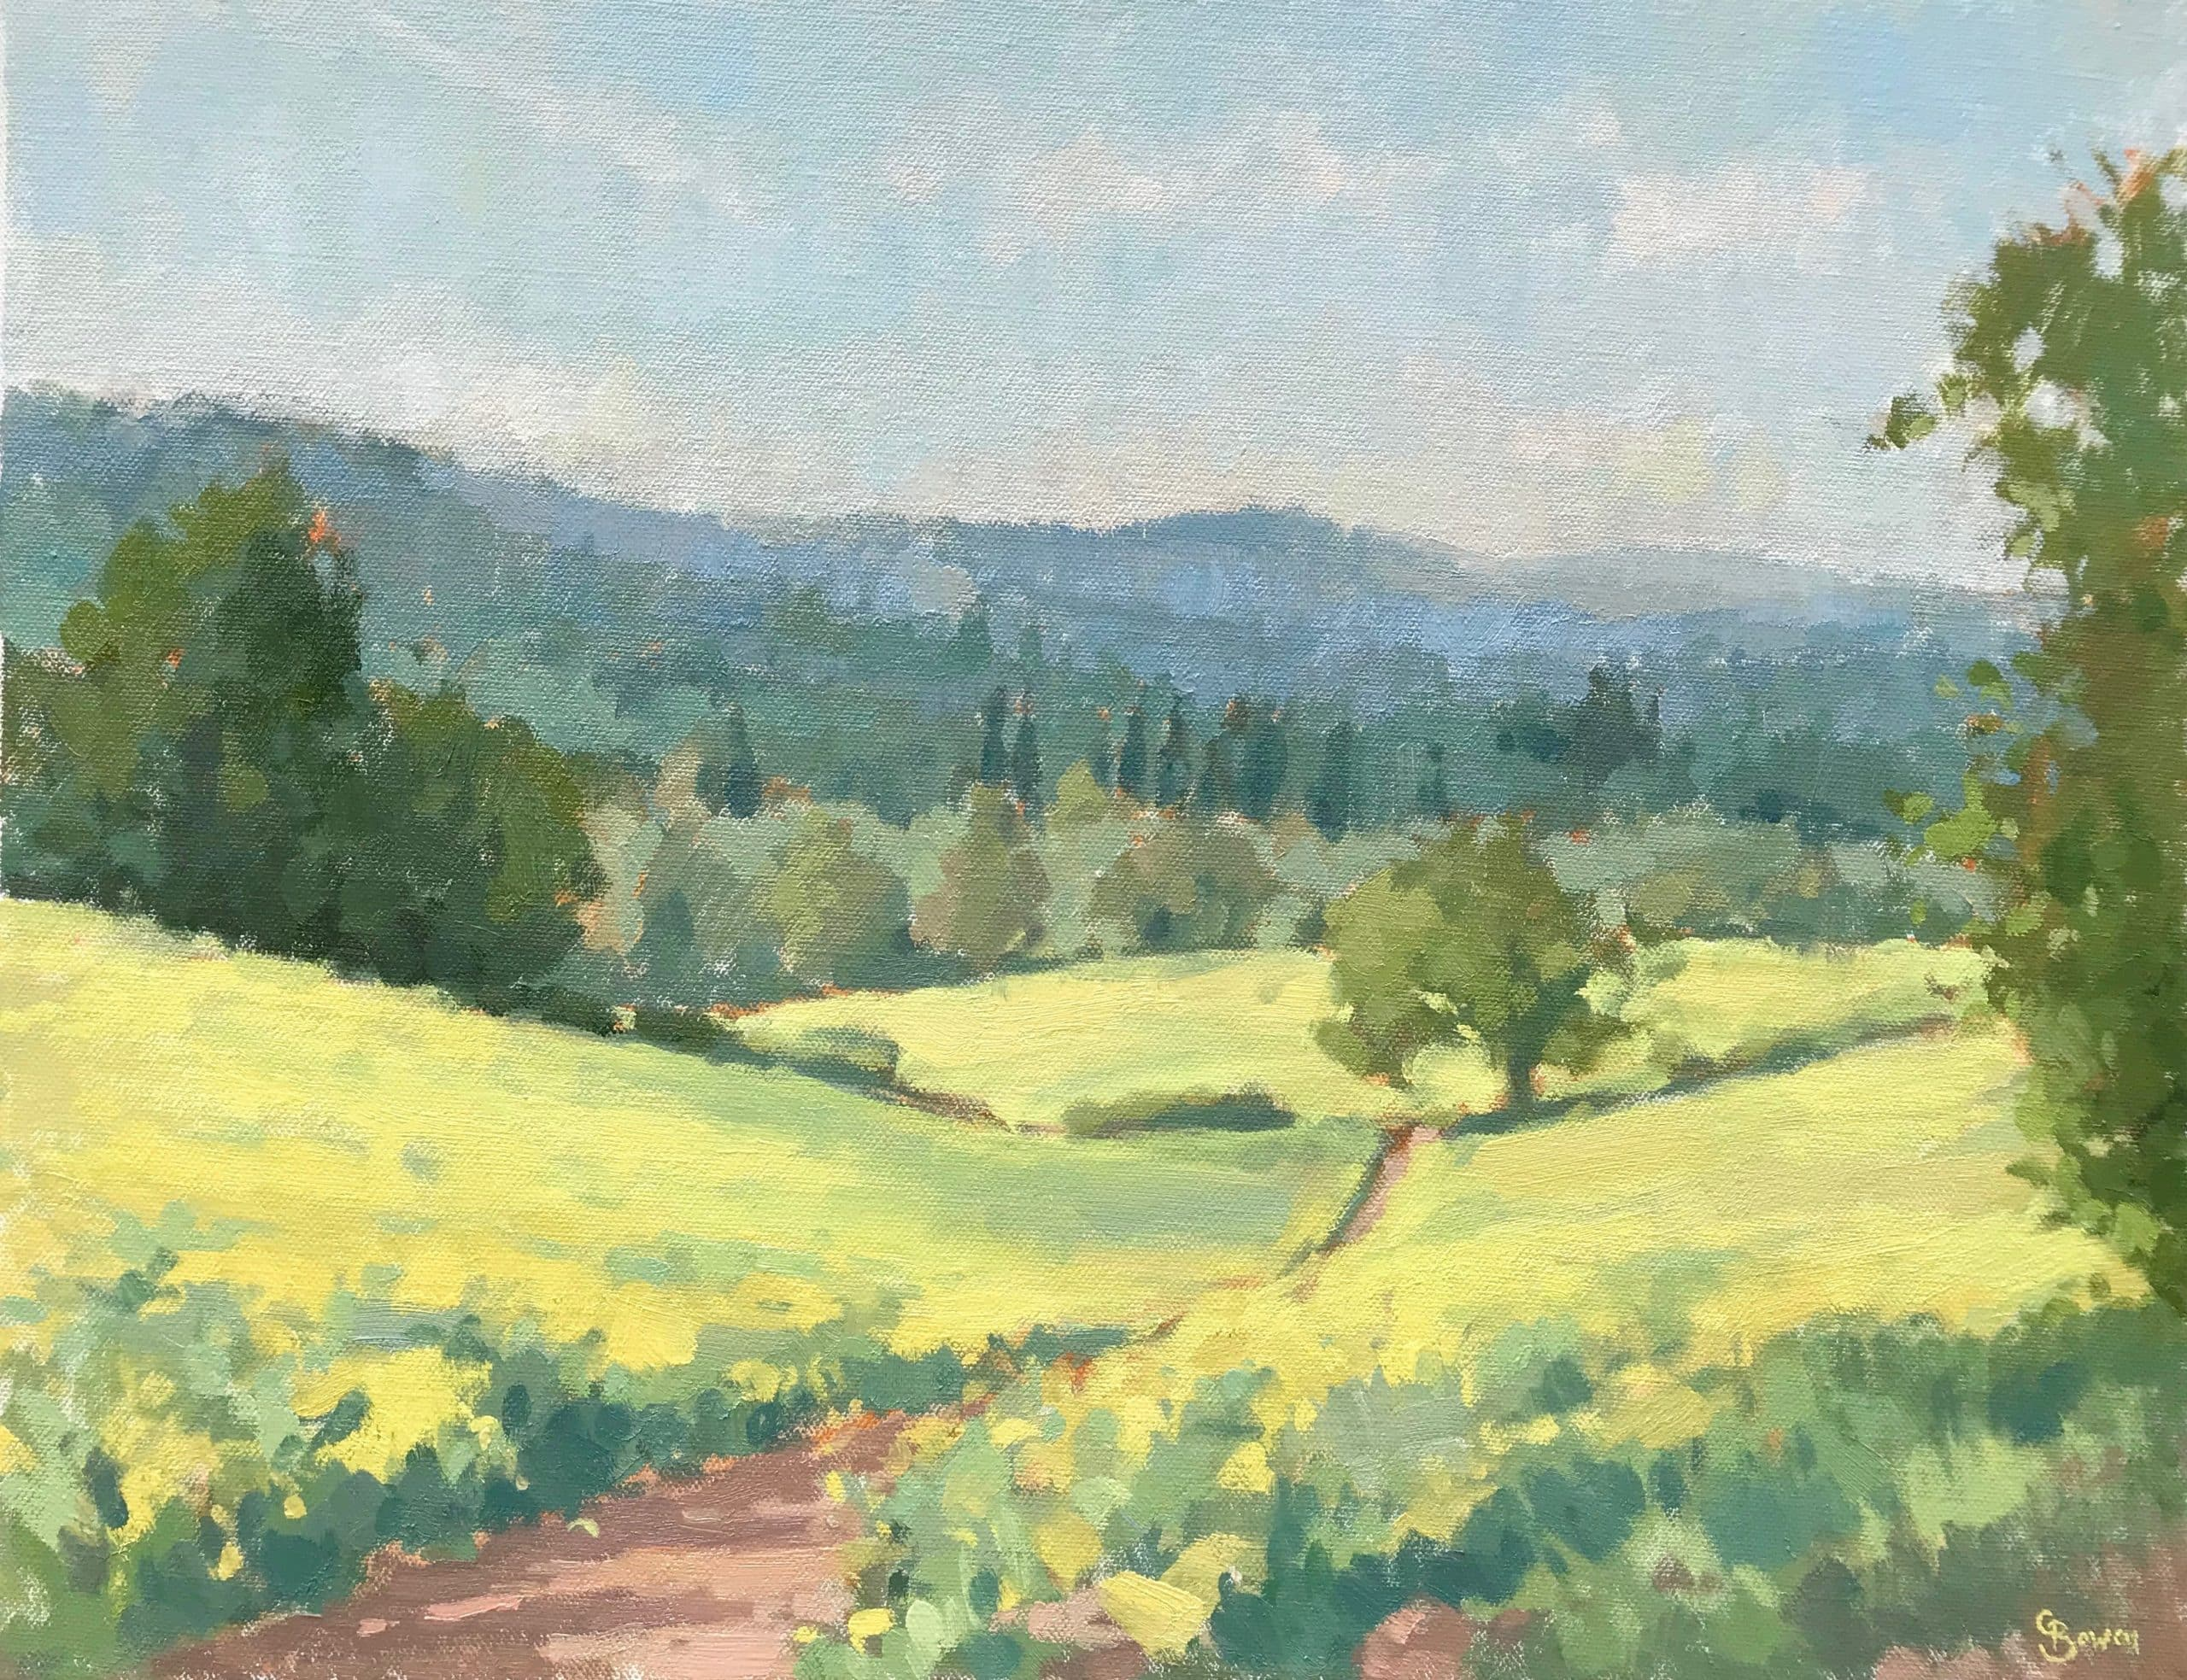 """'Surrey Hills' oil on canvas 12x16"""" by Clare Bowen"""